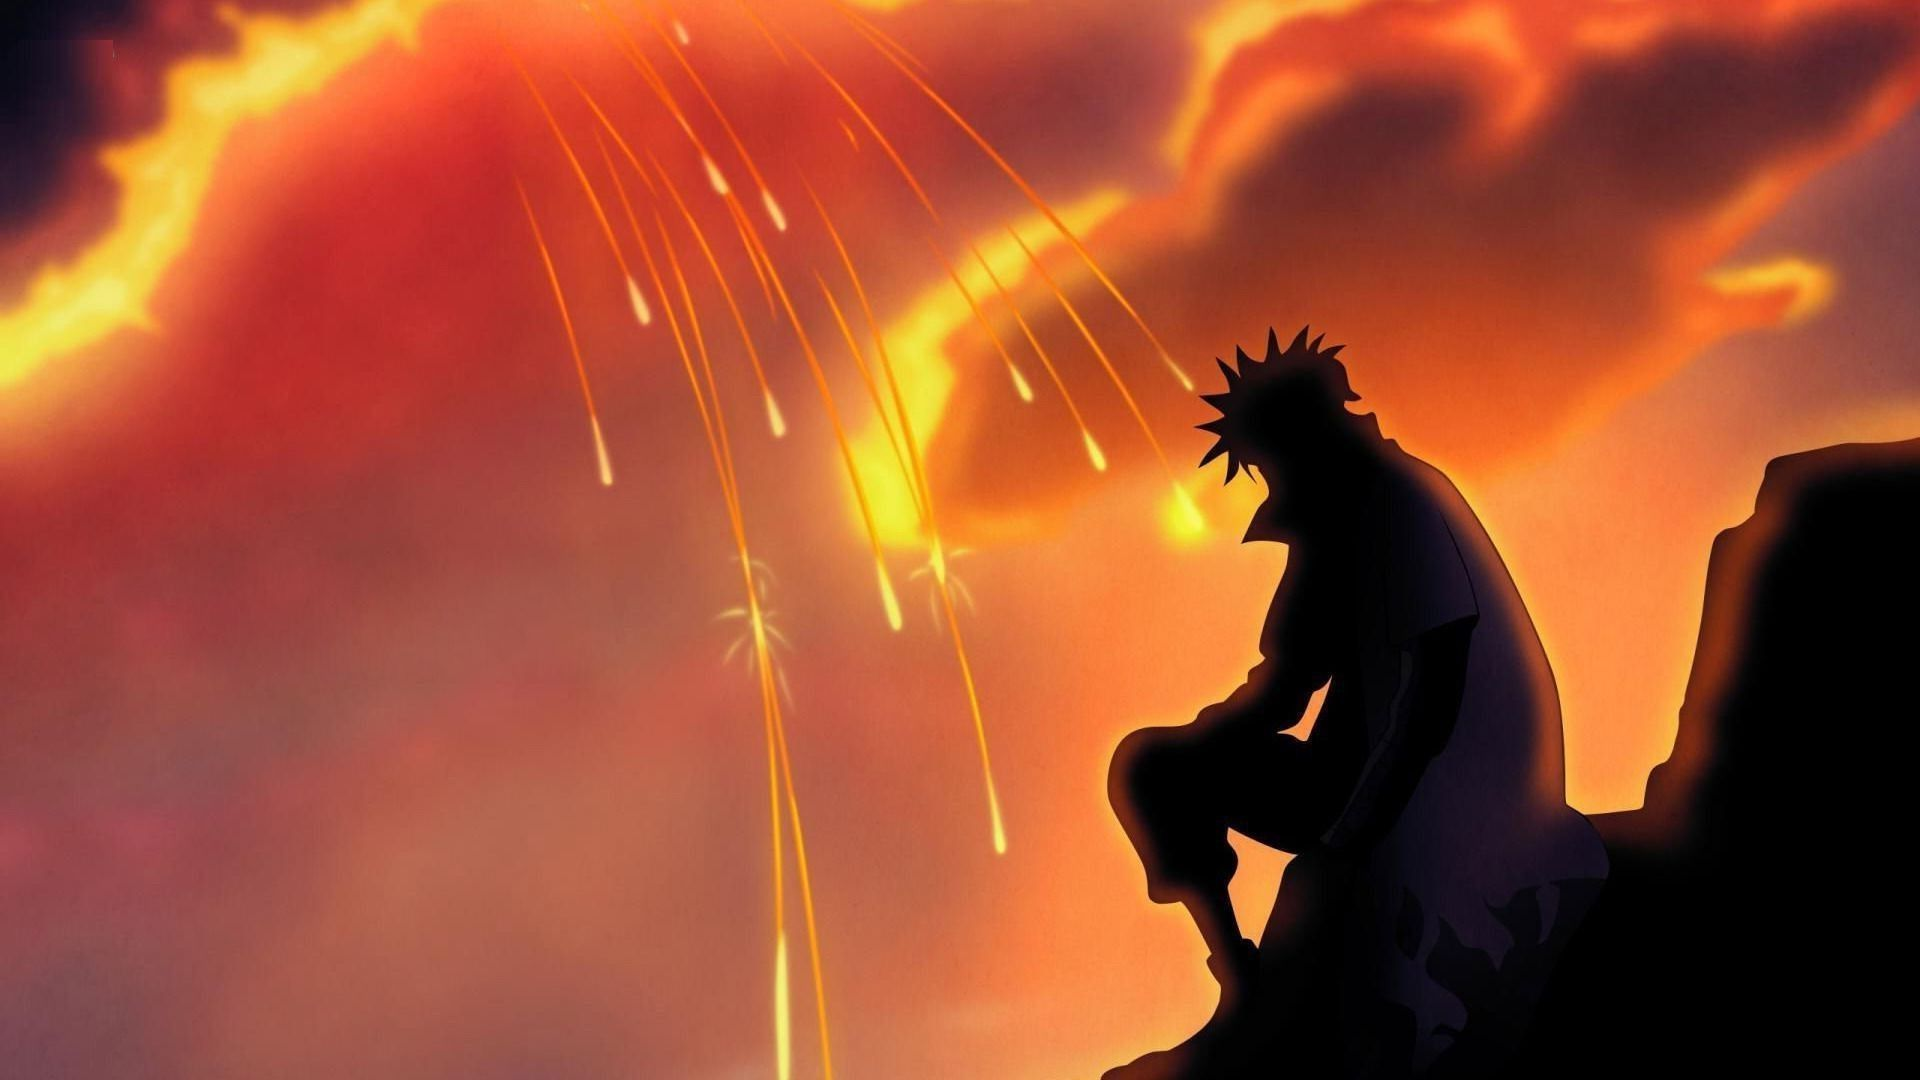 Naruto Wallpaper For Mobile Phone Tablet Desktop Computer And Other Devices Hd And 4k Wall In 2021 Naruto Wallpaper Best Naruto Wallpapers Wallpaper Naruto Shippuden